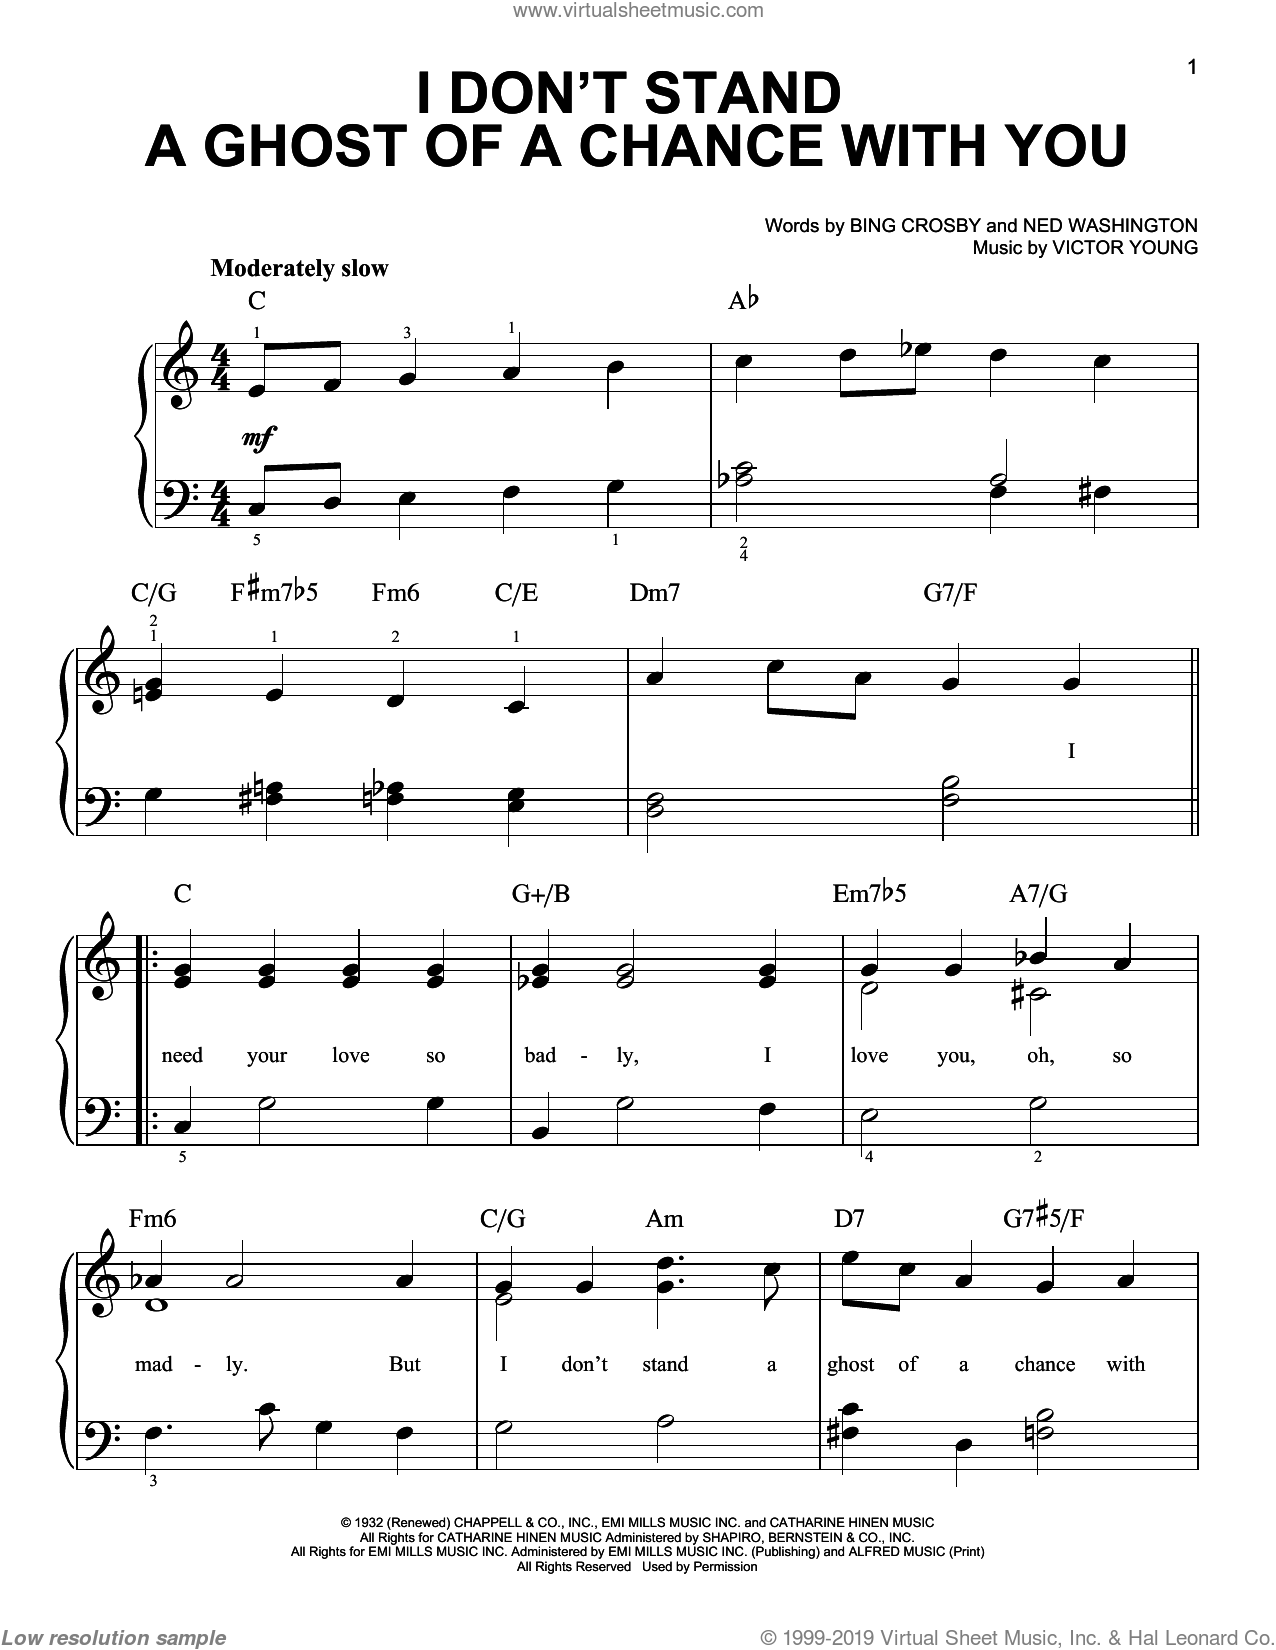 I Don't Stand A Ghost Of A Chance sheet music for piano solo by Victor Young, Billie Holiday, Frank Sinatra, Lester Young, Bing Crosby and Ned Washington